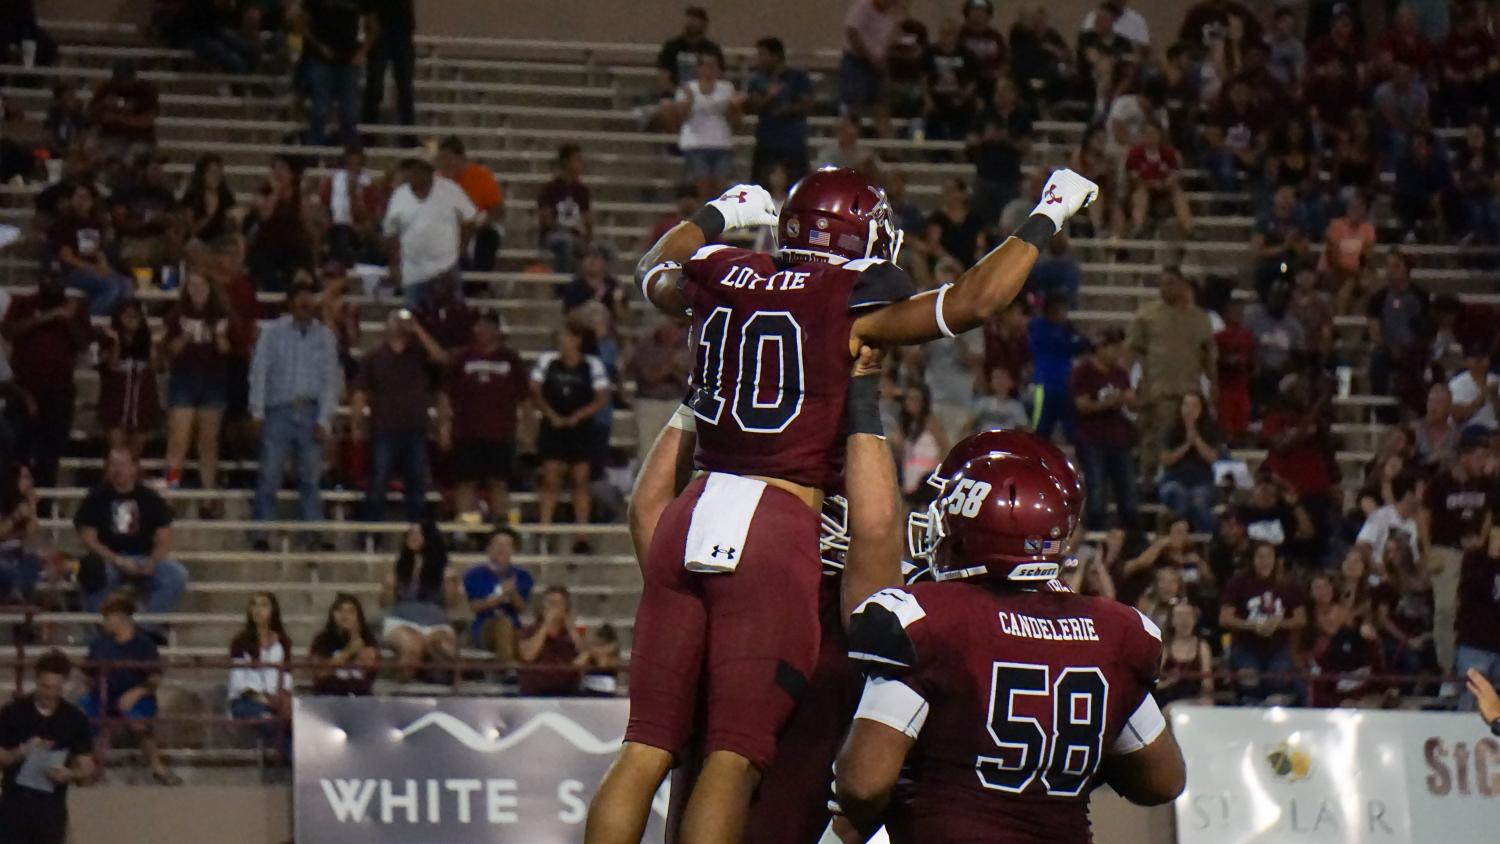 NMSU sacks Idaho 11 times en route to a season saving victory, keeping their bowl hopes alive.